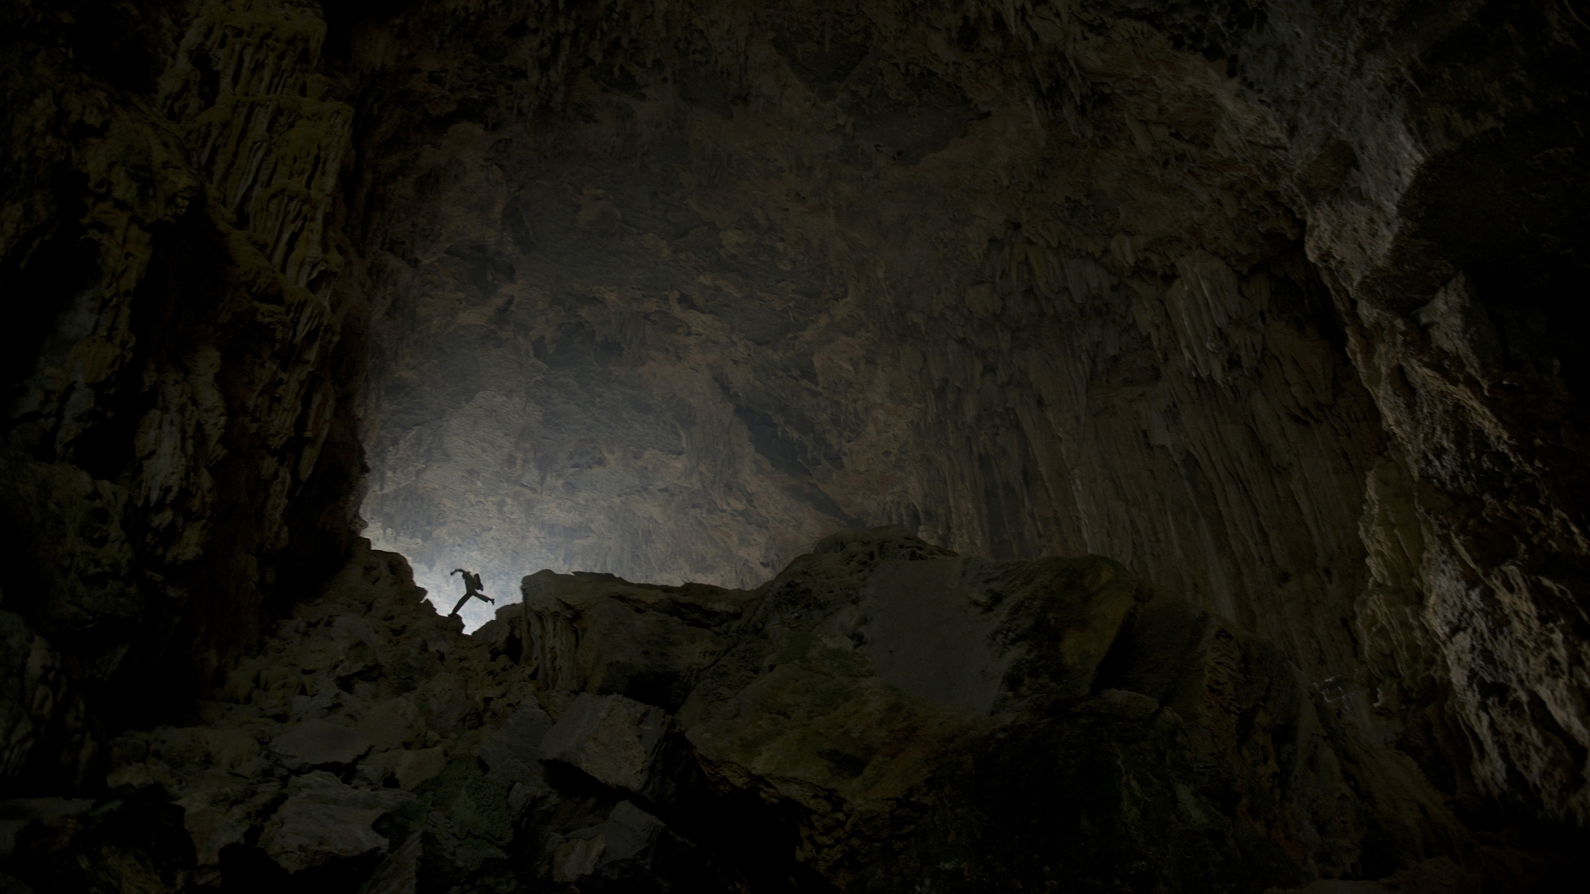 French caving expedition in Fengshan, China, Guangxi province, 2014.